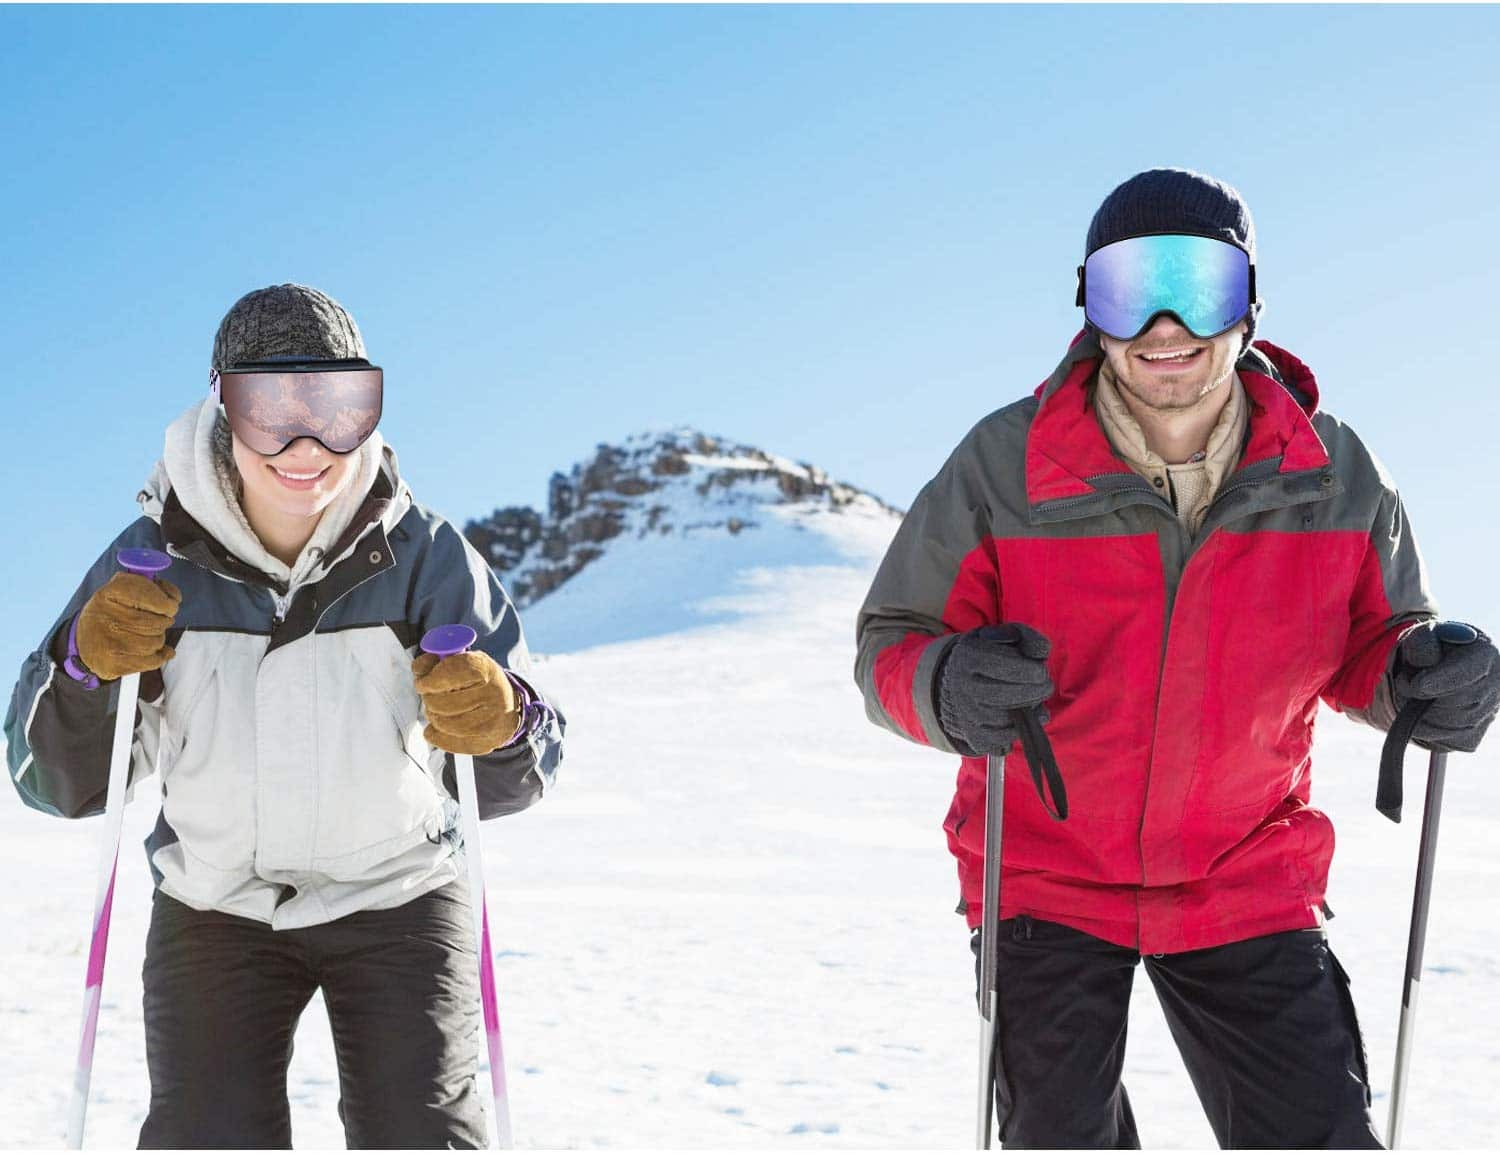 Top 10 Best Snowboard Goggles in 2019